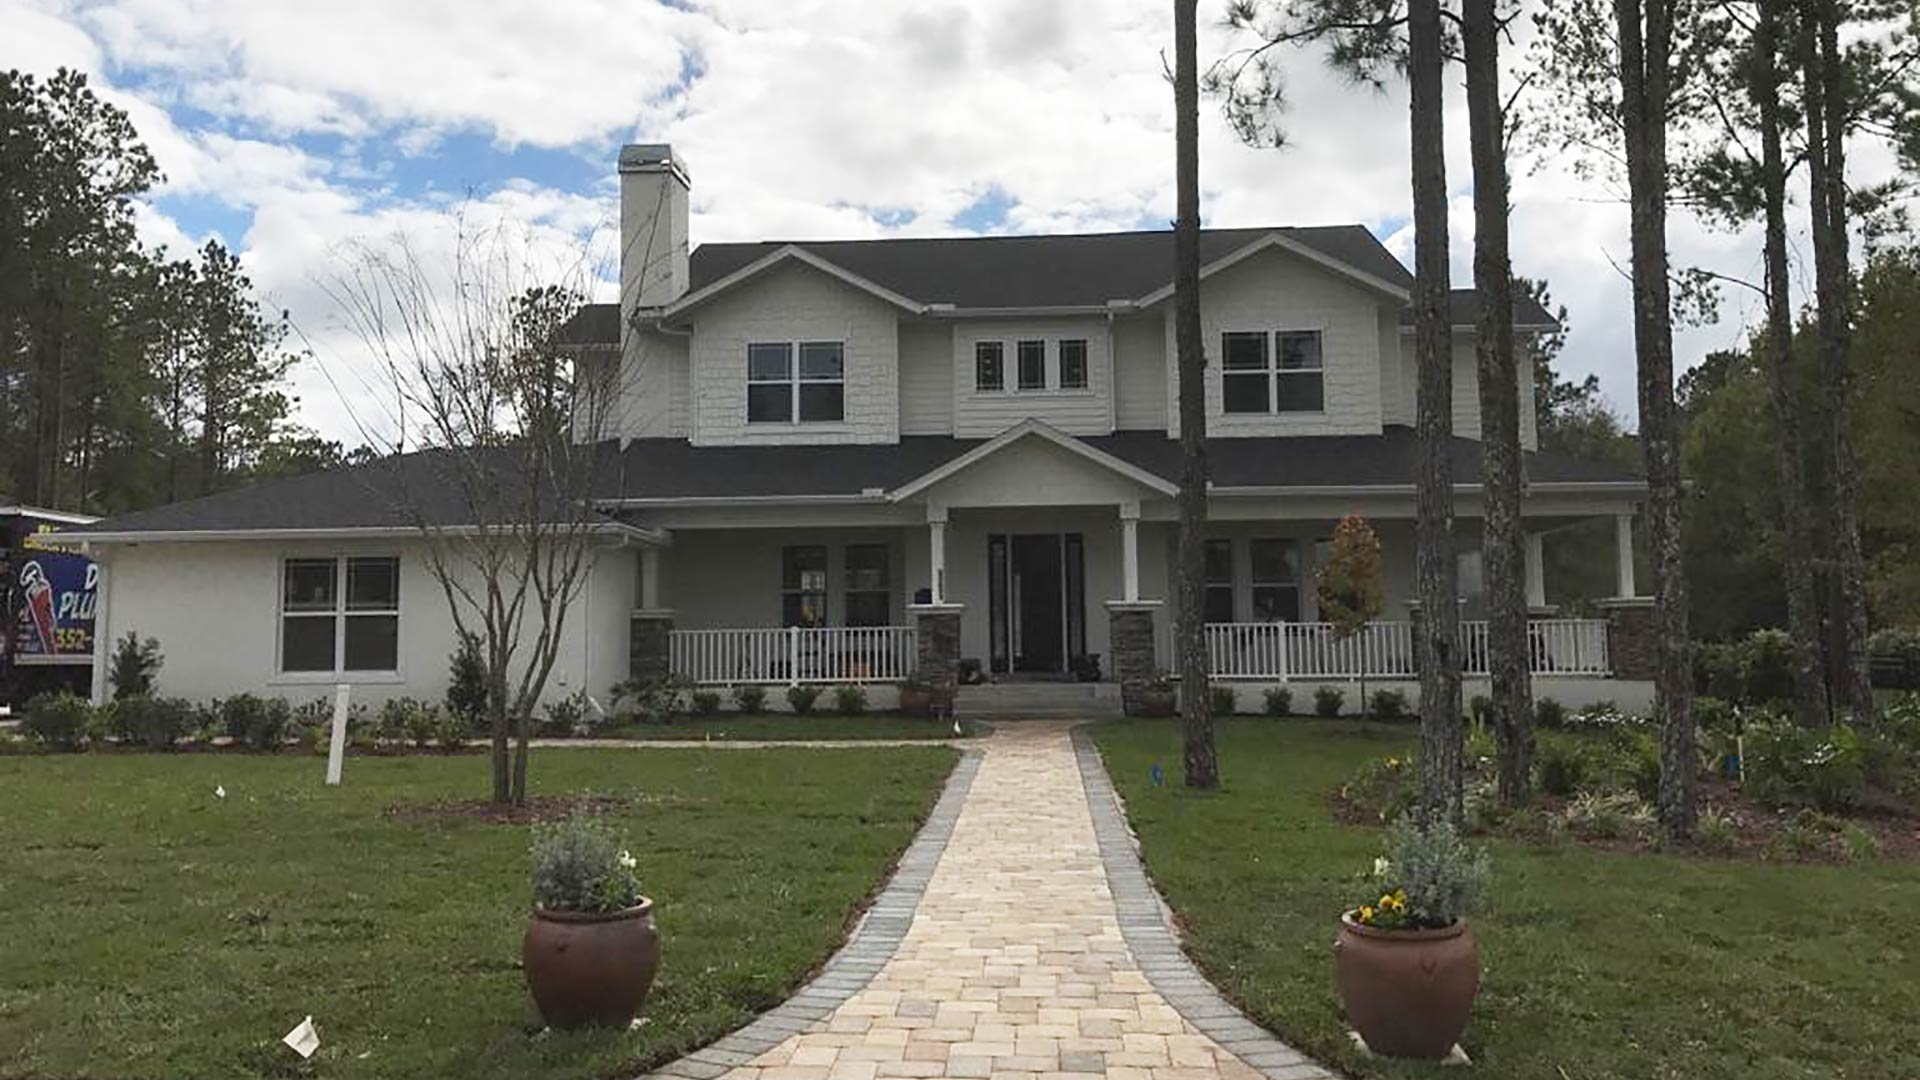 This residential property has a well manicured lawn and landscaping, and a paver walkway.